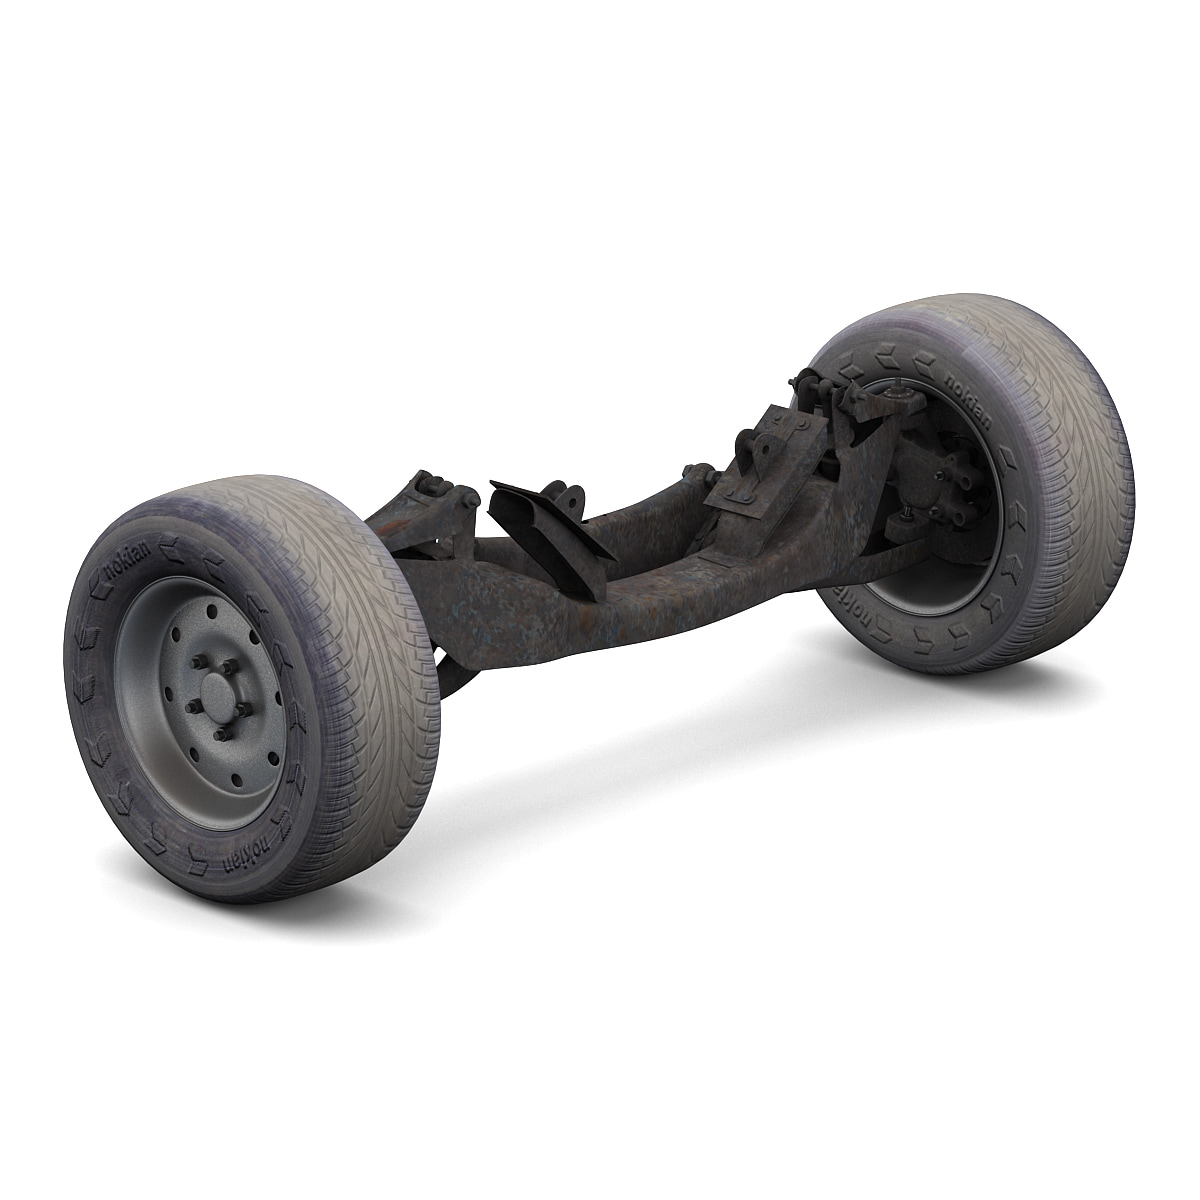 Car_Front_Suspension_001.jpg